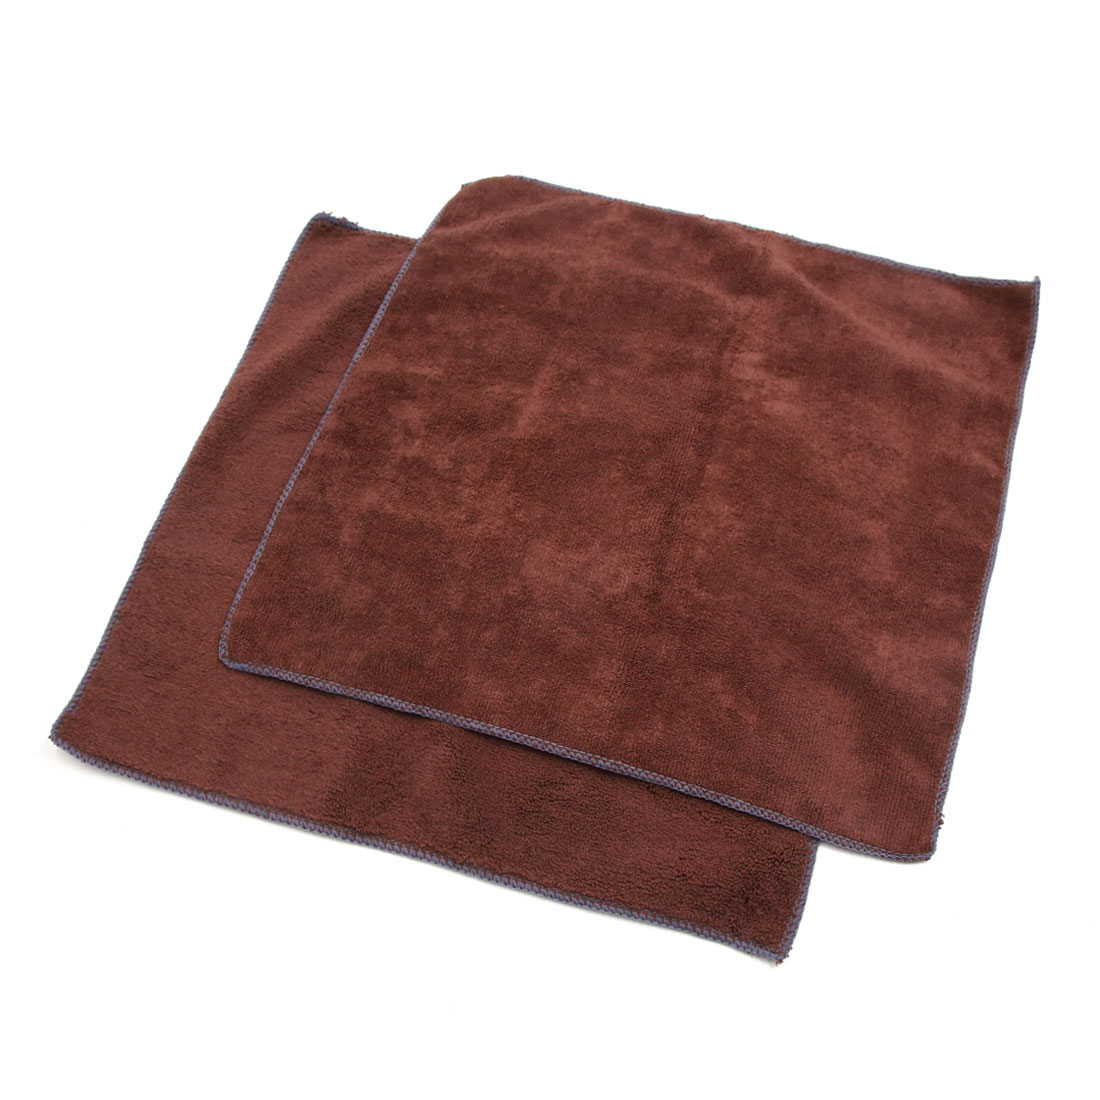 "2Pcs Microfiber Car Wash Cleaning Towel Buffing Cloth Tool Brown 15.7"" x 15.7"""